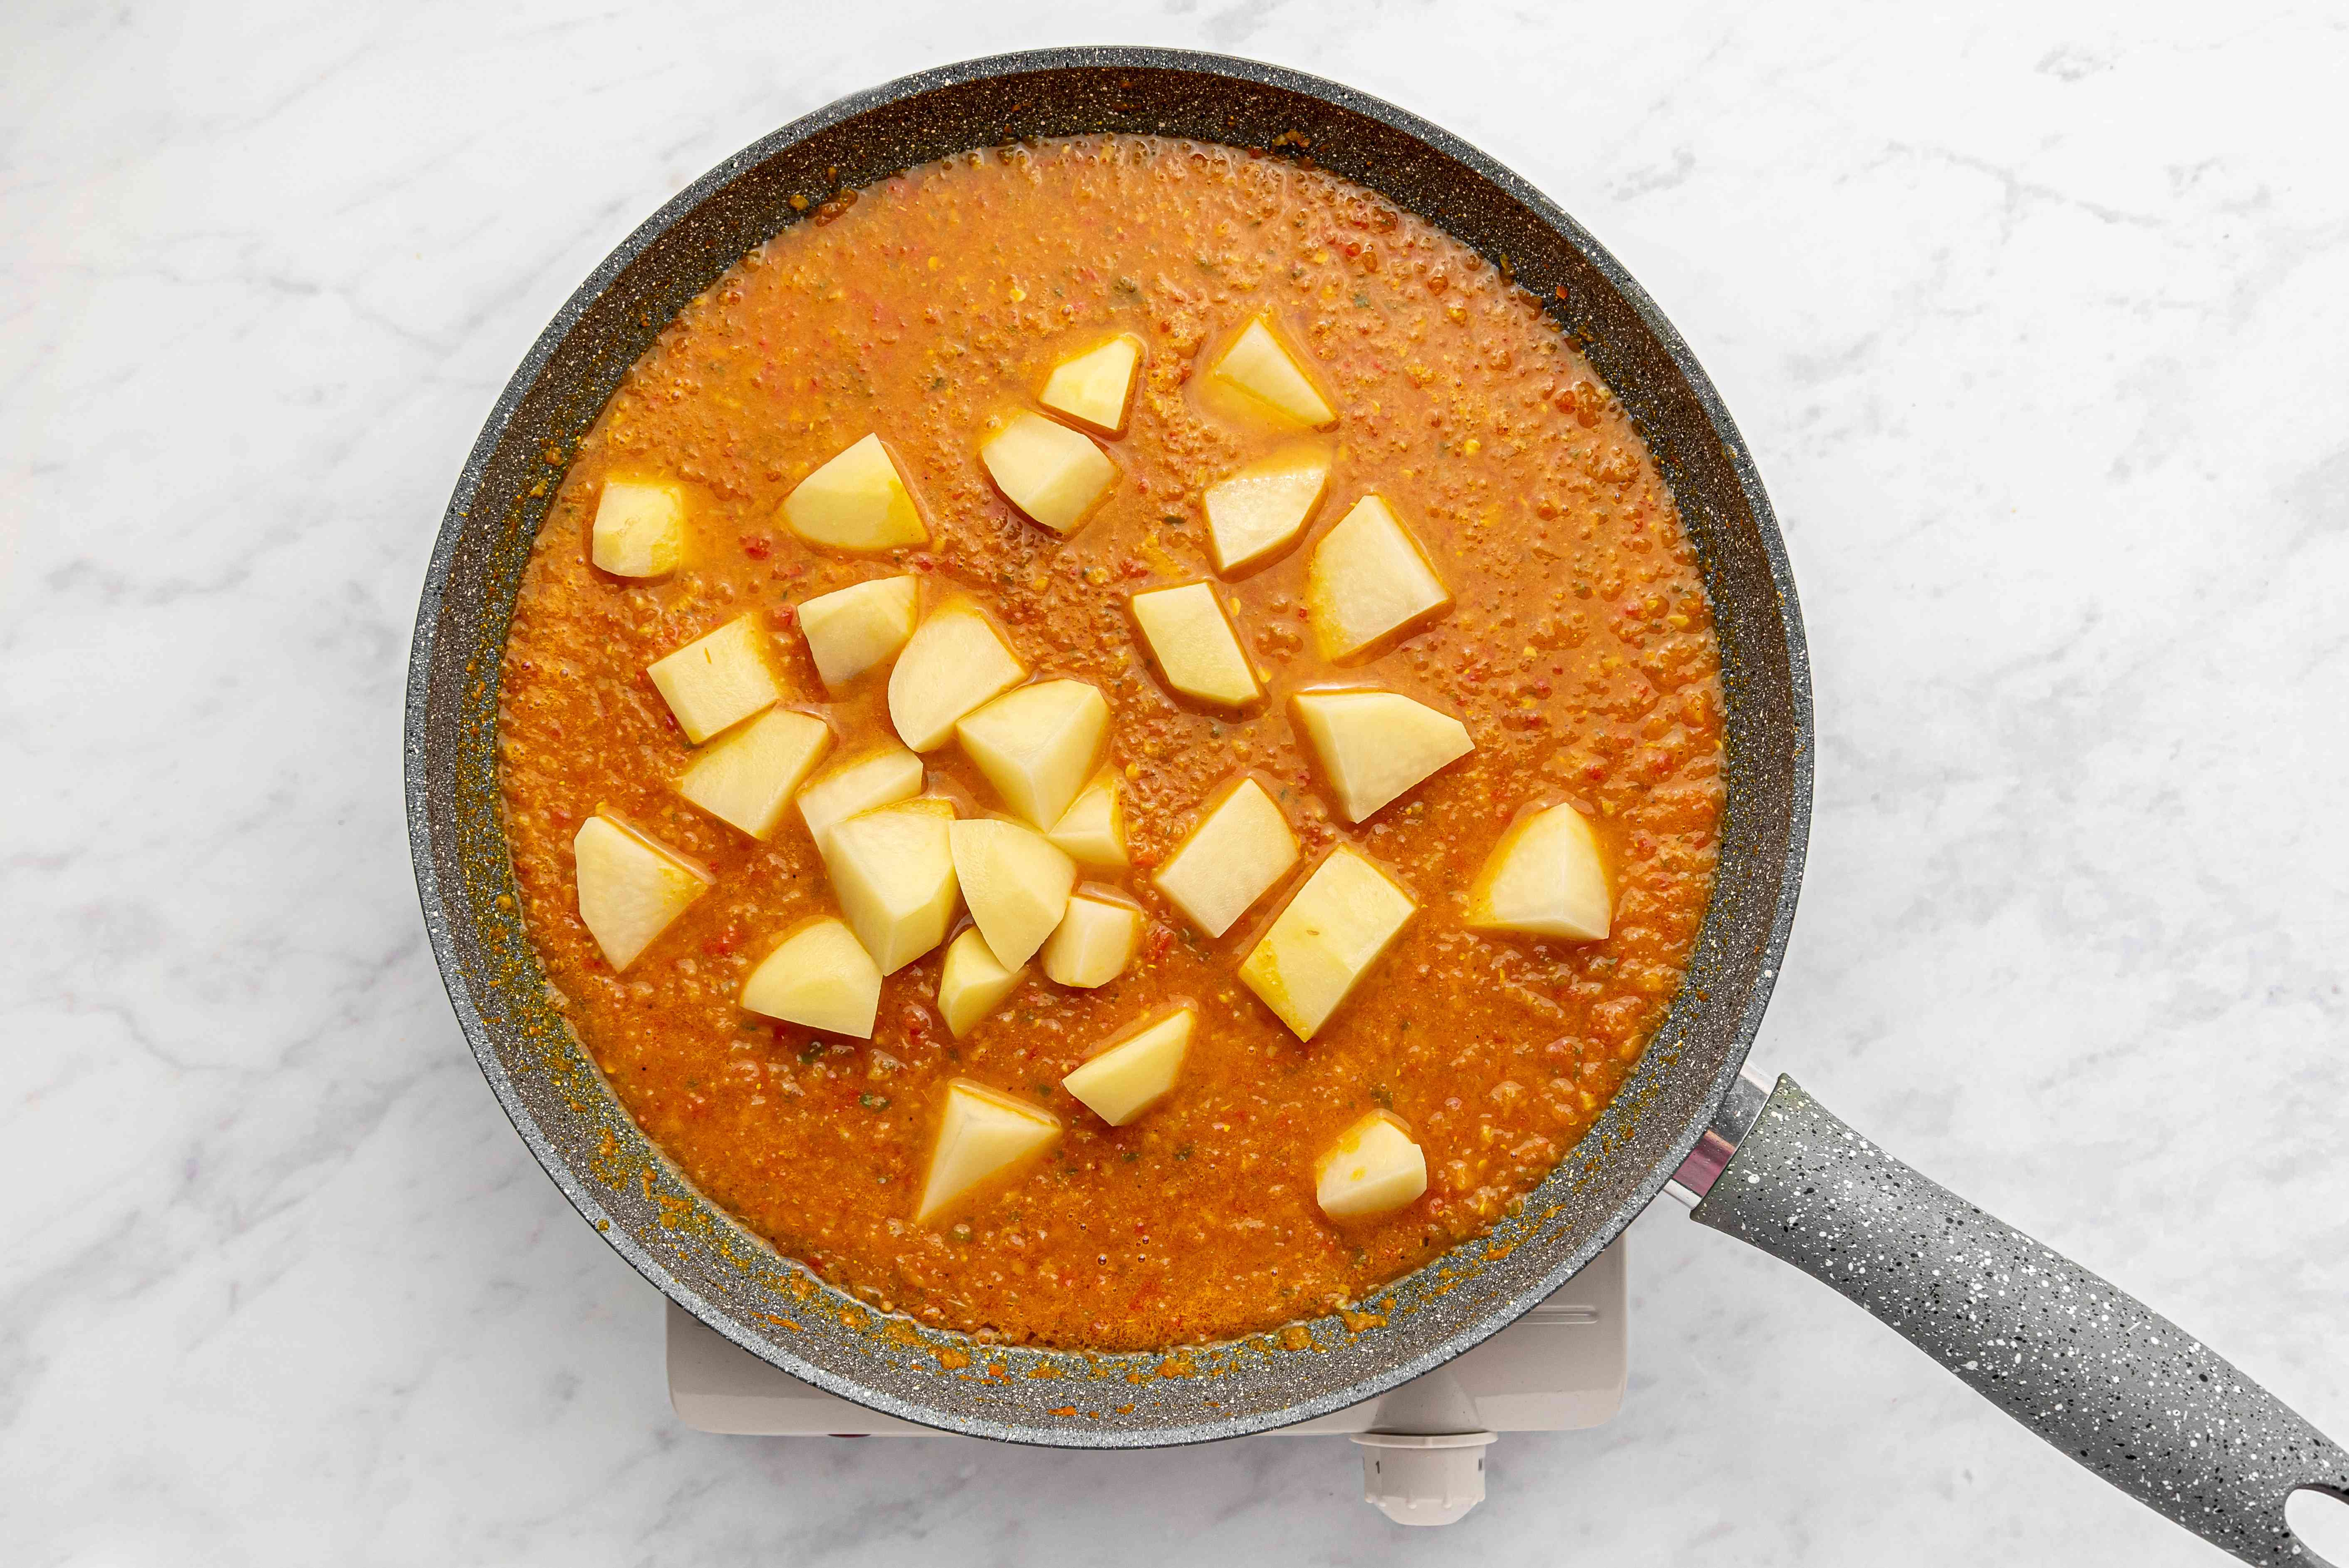 add potatoes to the masala in the pan